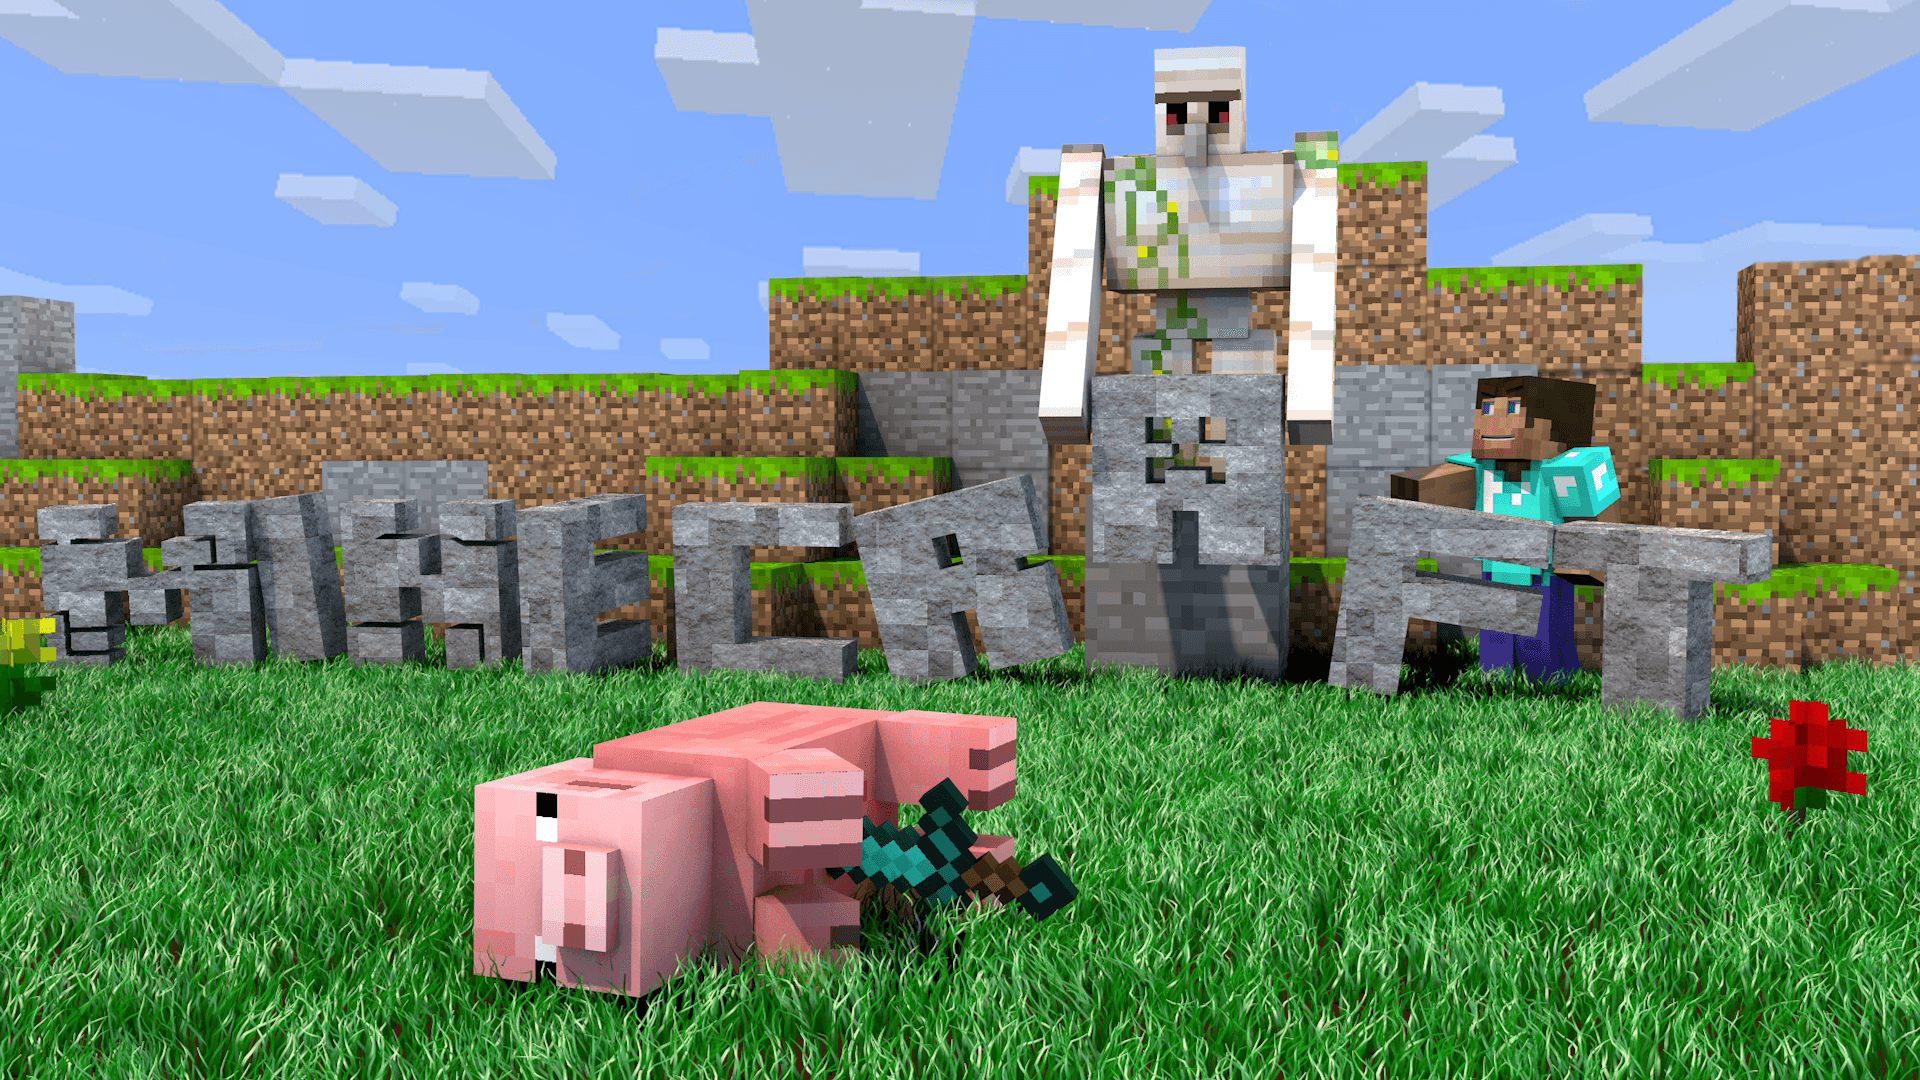 minecraft_wallpaper___murdered_pig__1920x1080__by_deztizzy-d6h6c5m